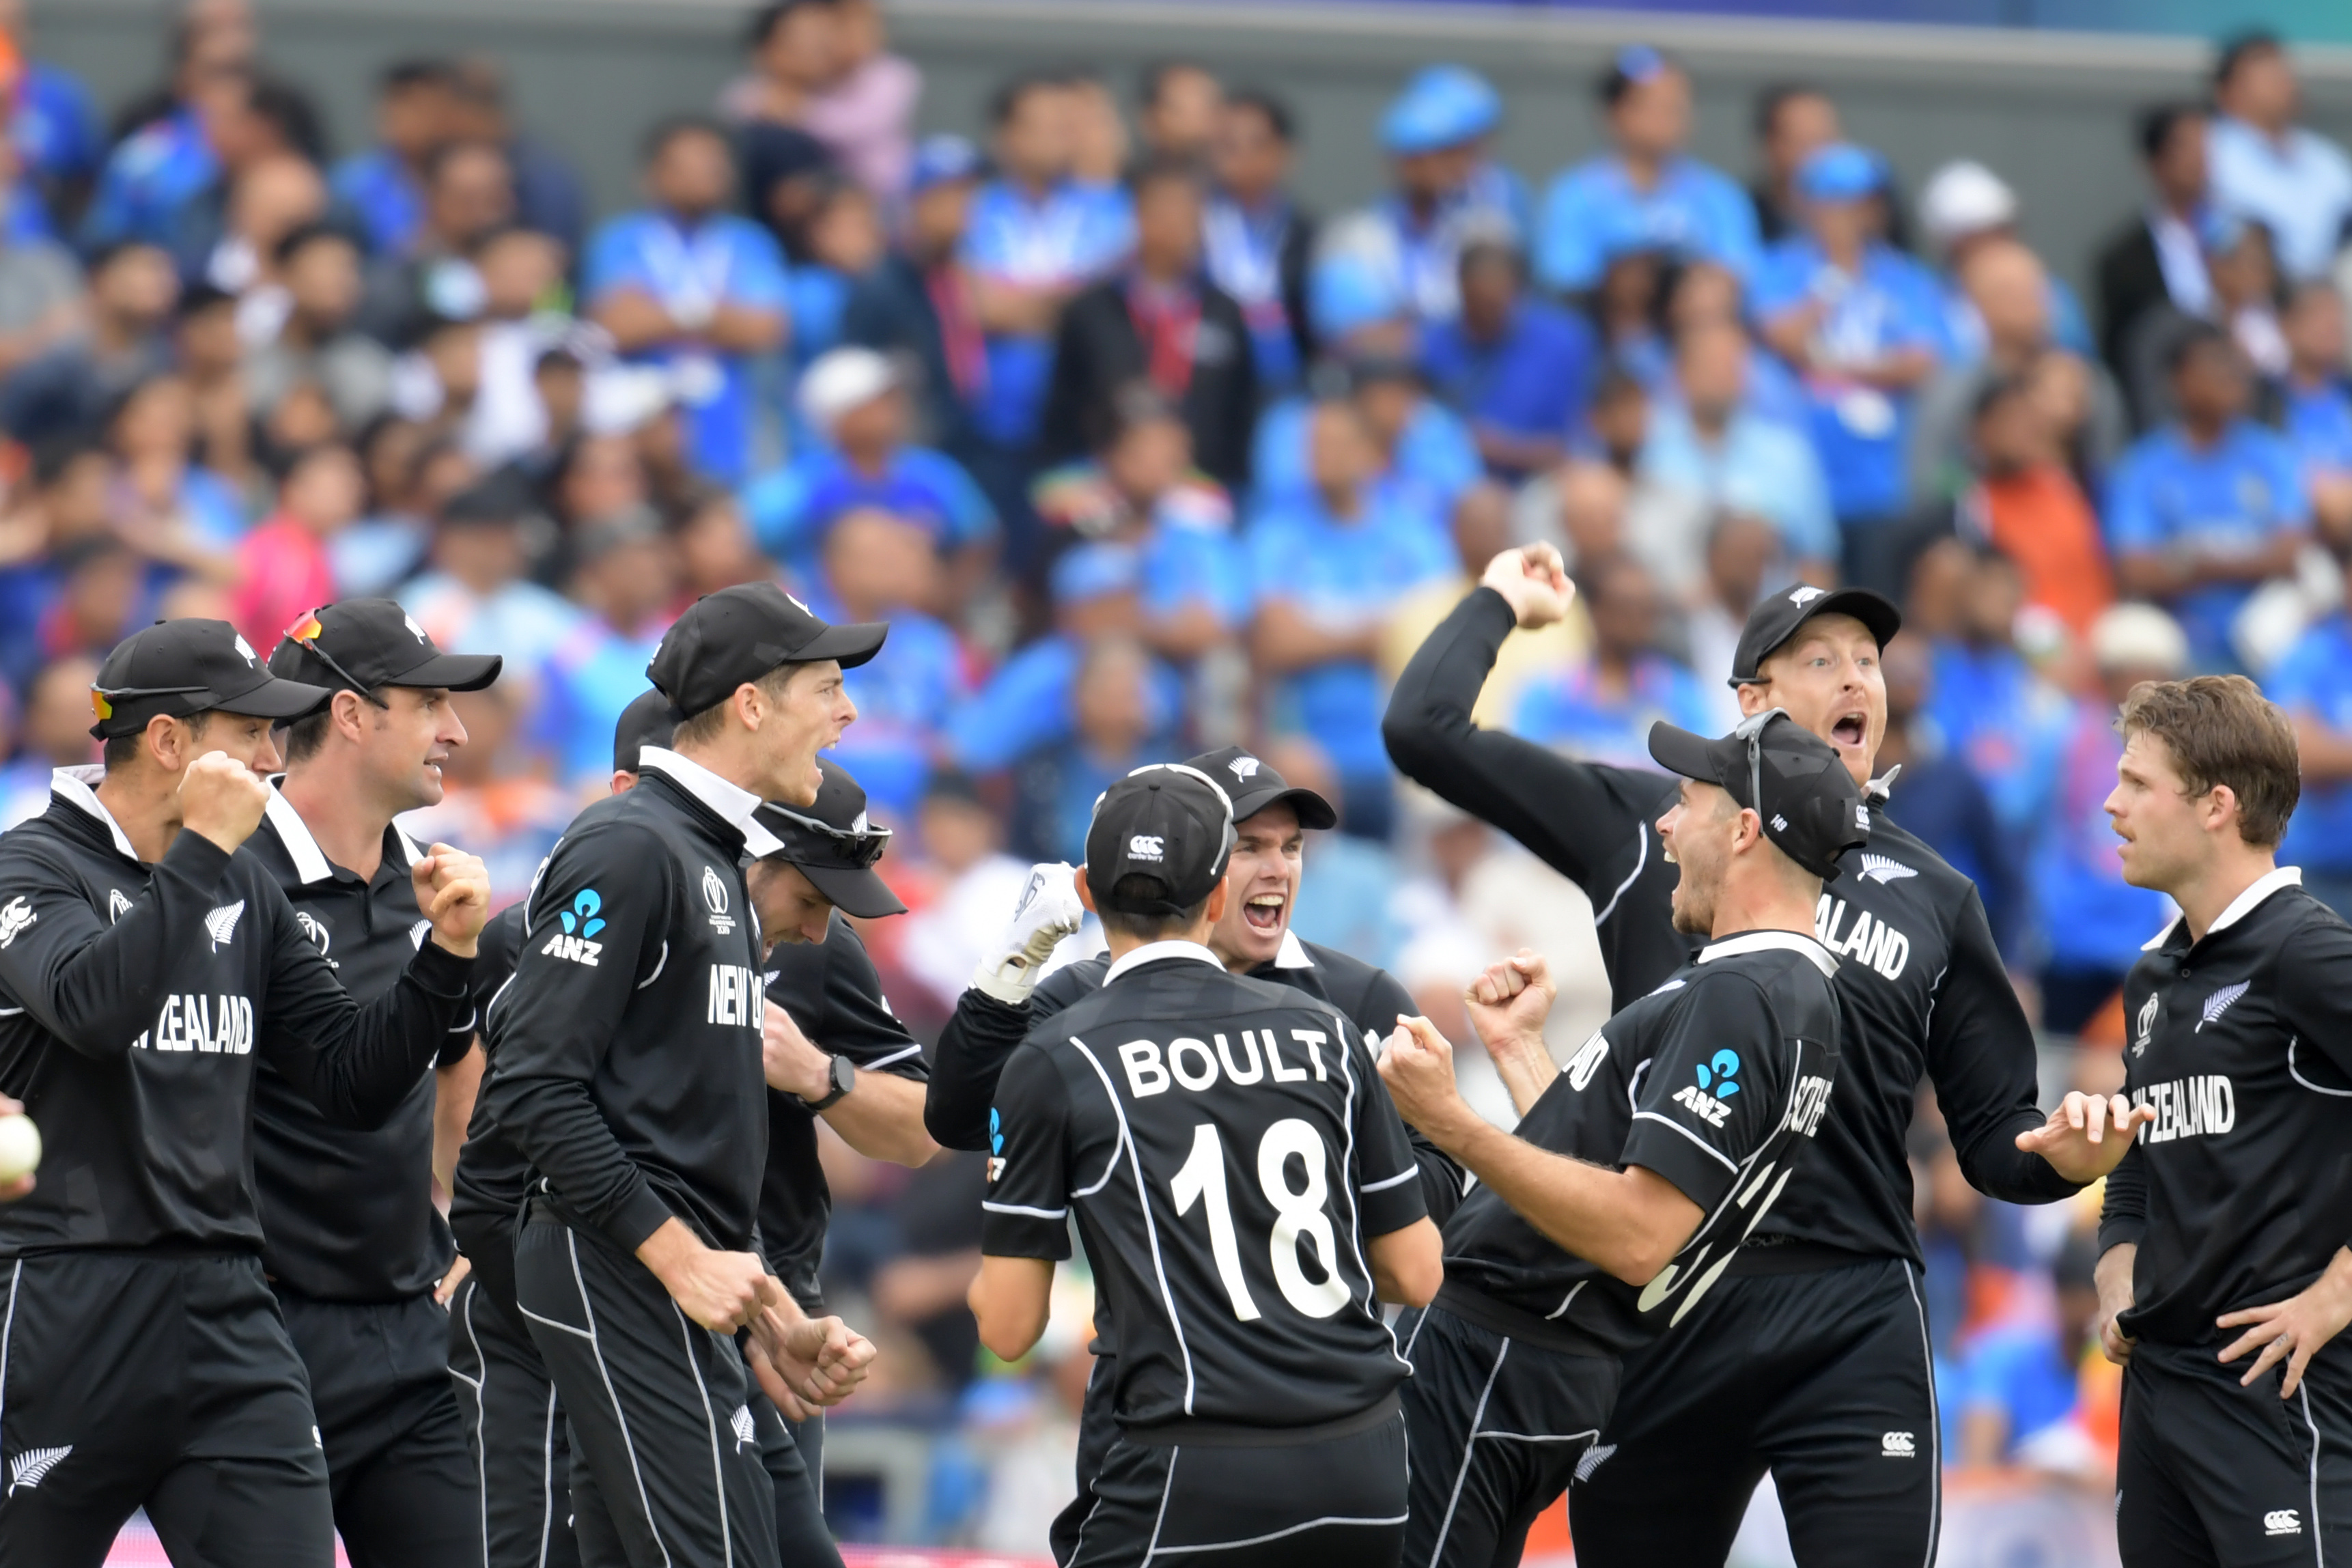 New Zealand's Martin Guptill (2R) celebrates with teammates after running out India's Mahendra Singh Dhoni for 50 during the 2019 Cricket World Cup first semi-final between New Zealand and India at Old Trafford in Manchester, northwest England, on July 10, 2019.